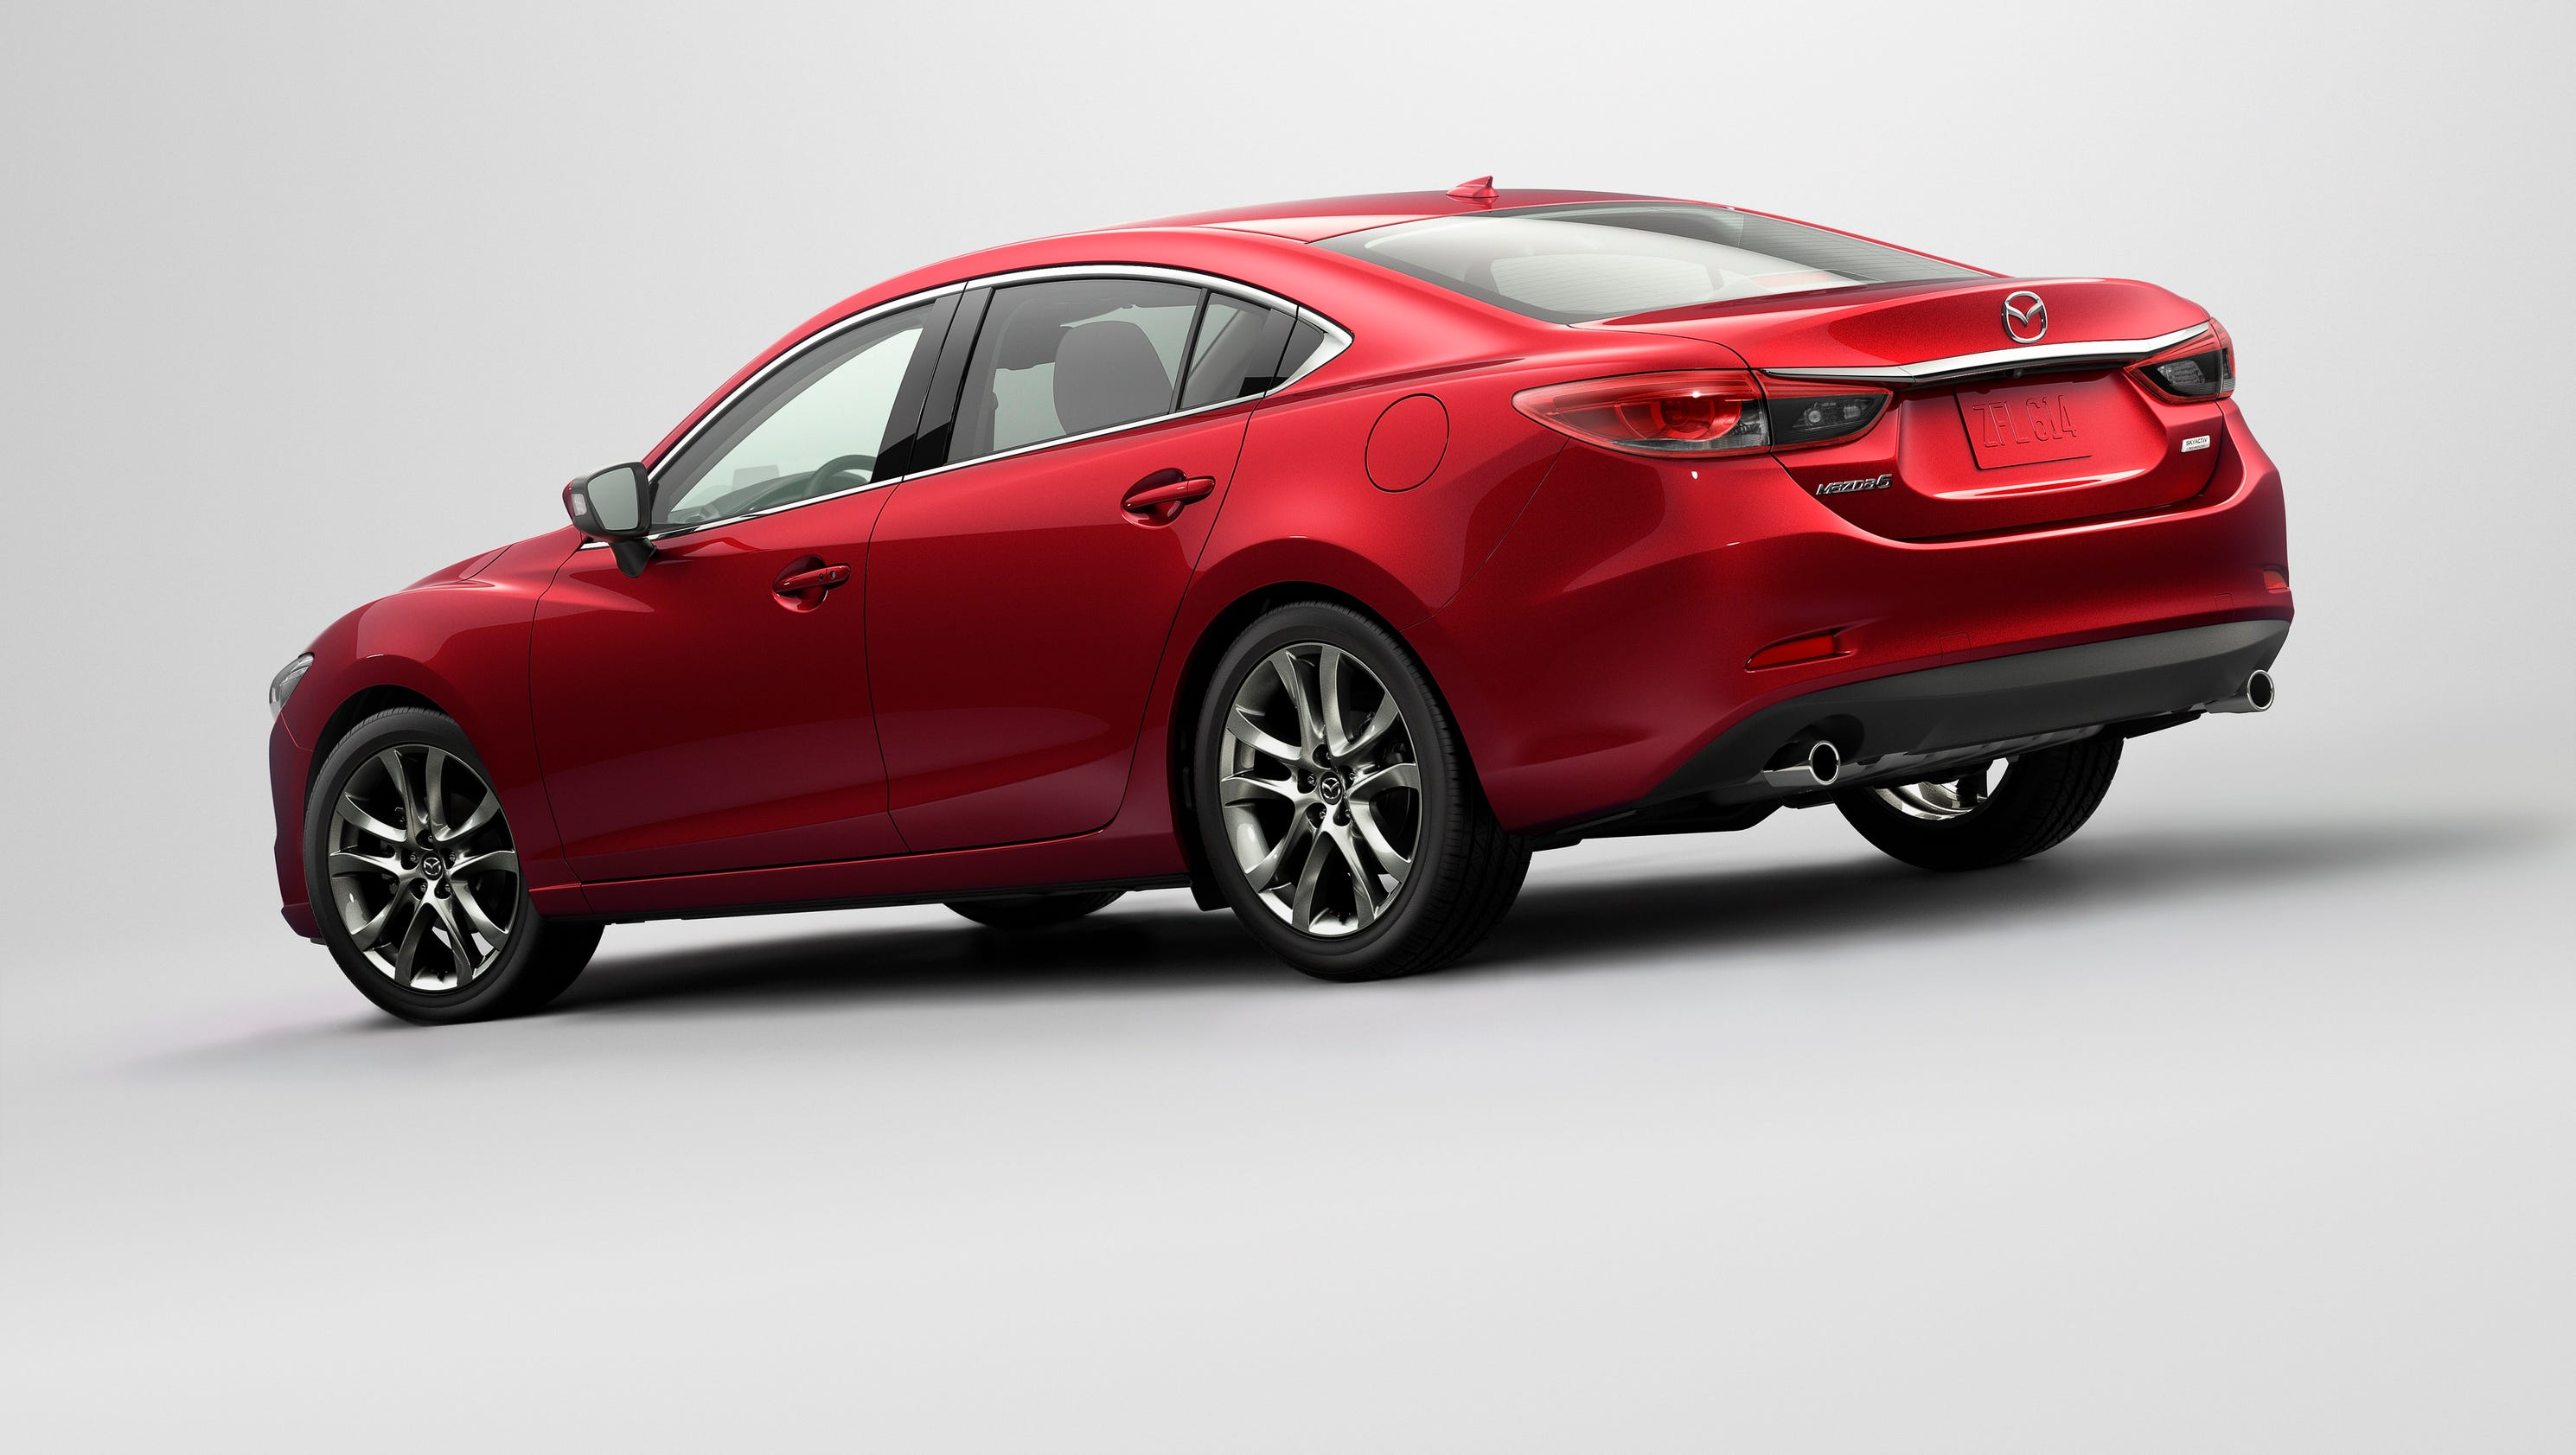 mazda news price front coupe three to with view expand quarter variants mazdaspeed more lineup